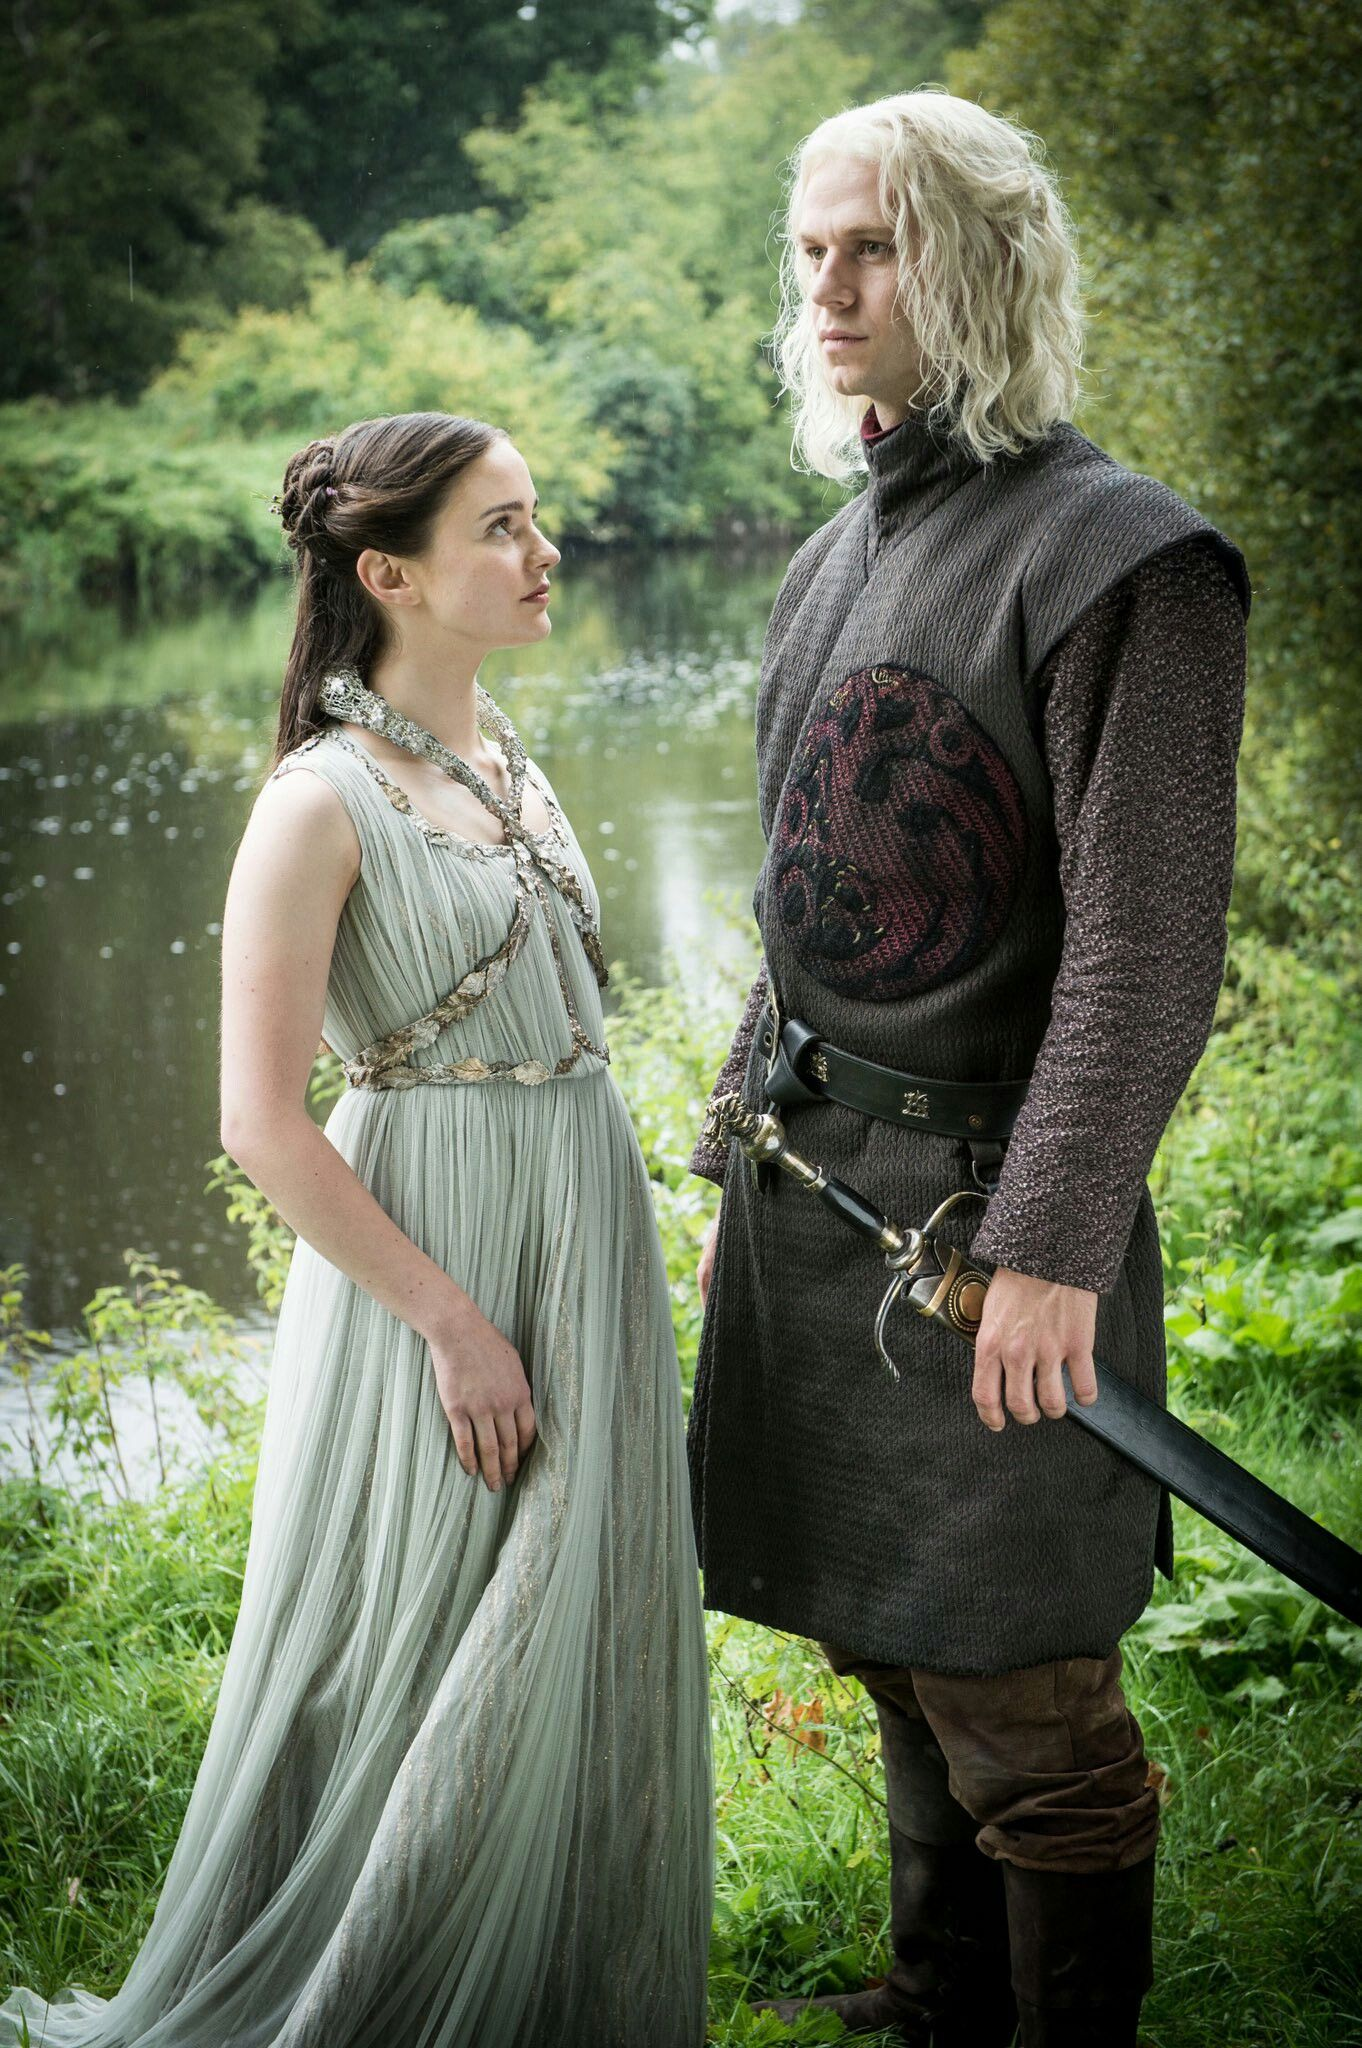 Pin By Marites Orias On Like Game Of Thrones Rhaegar And Lyanna A Song Of Ice And Fire Lyanna